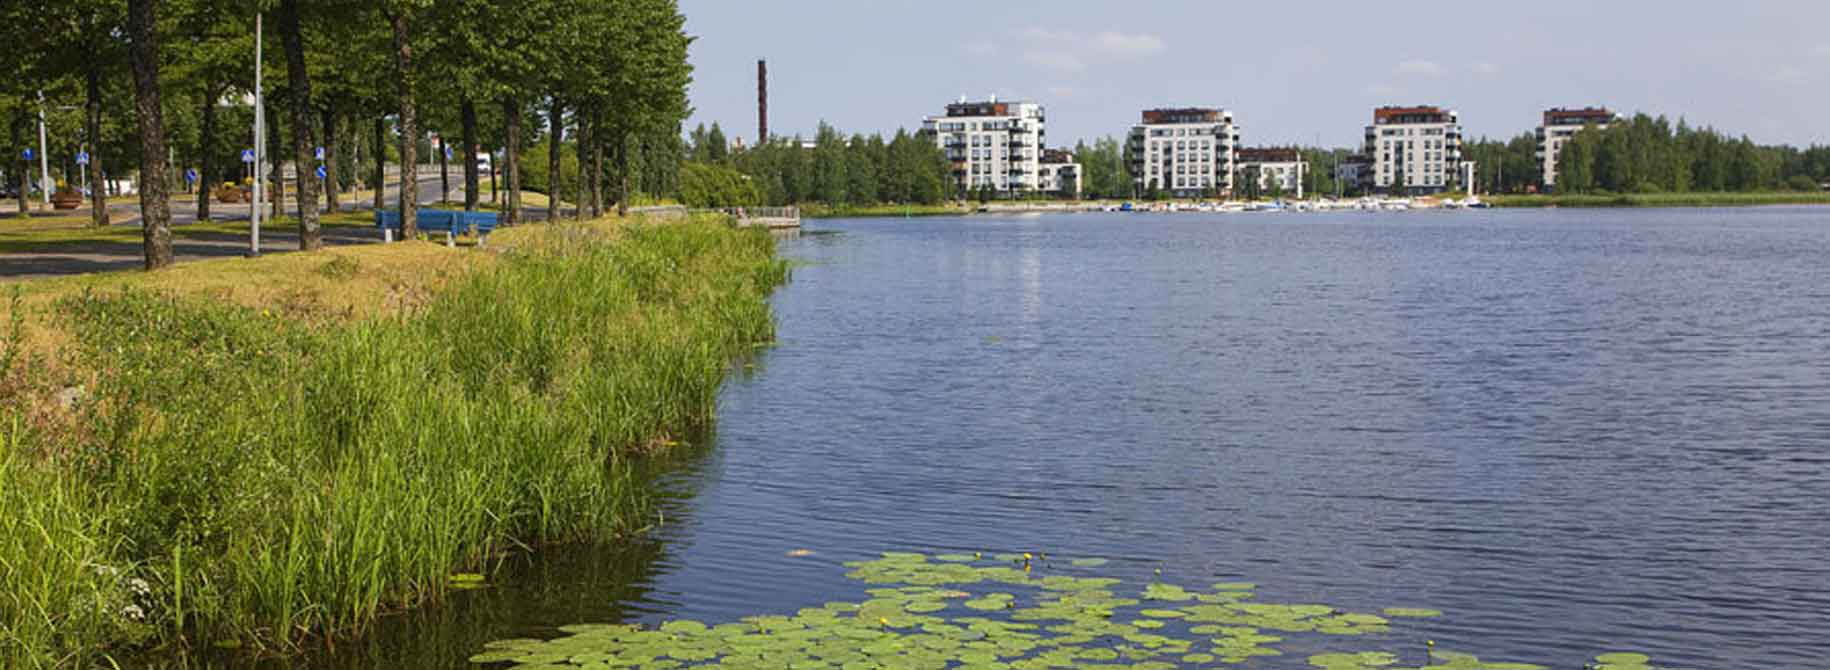 Landscape photo Hameenlinna apartment buildings in the background